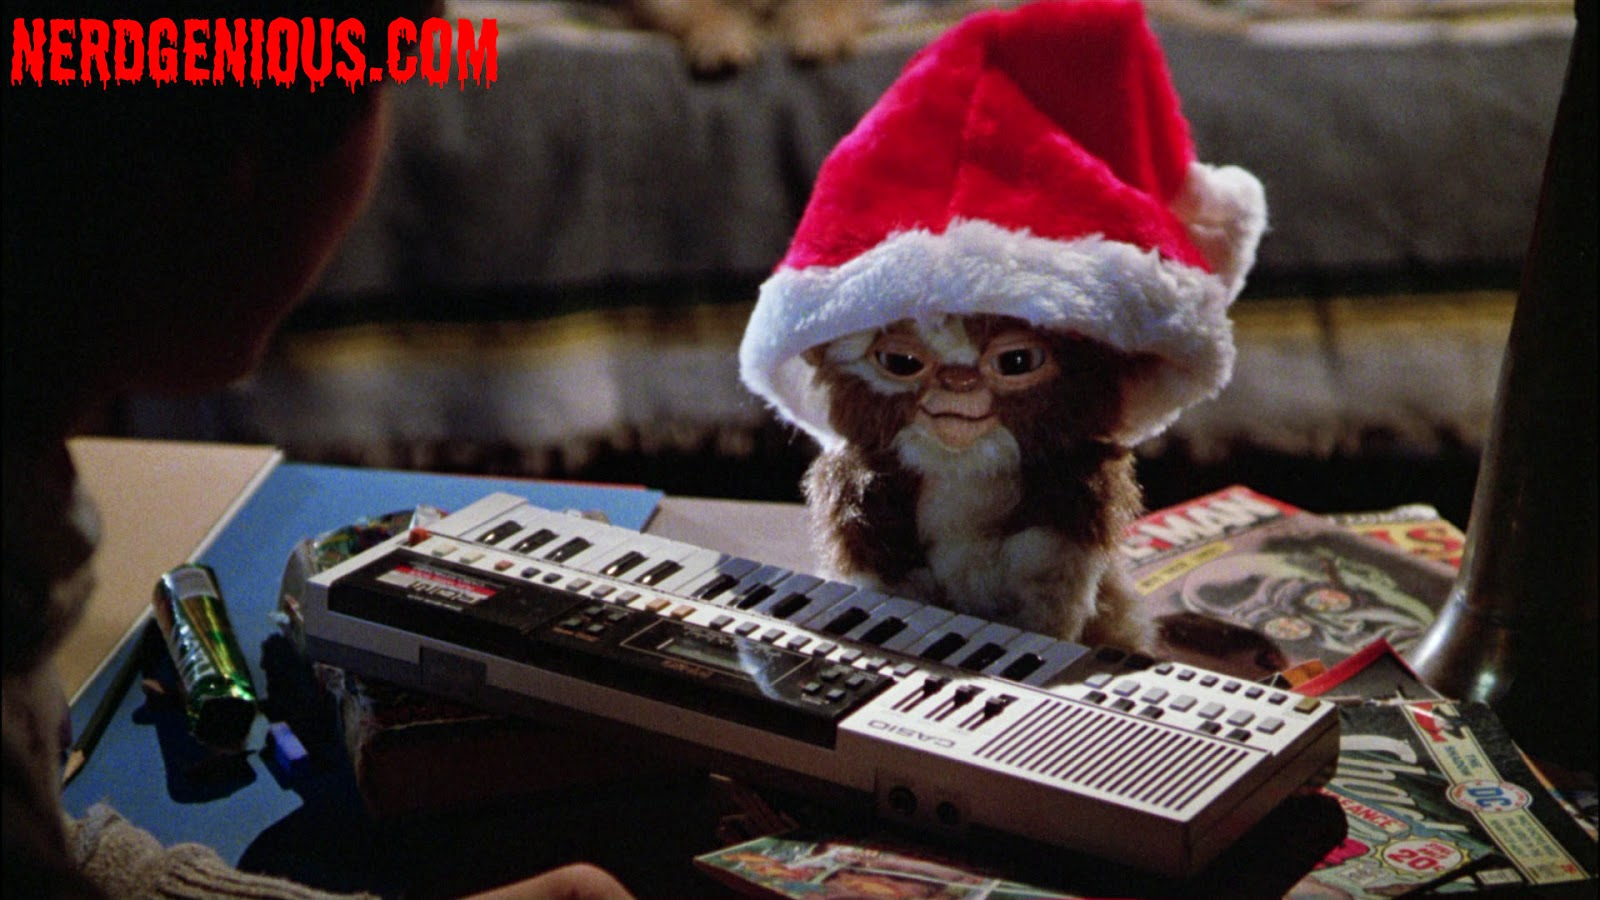 Mogwai Gizmo plays the christmas classics in 1984's Gremlins